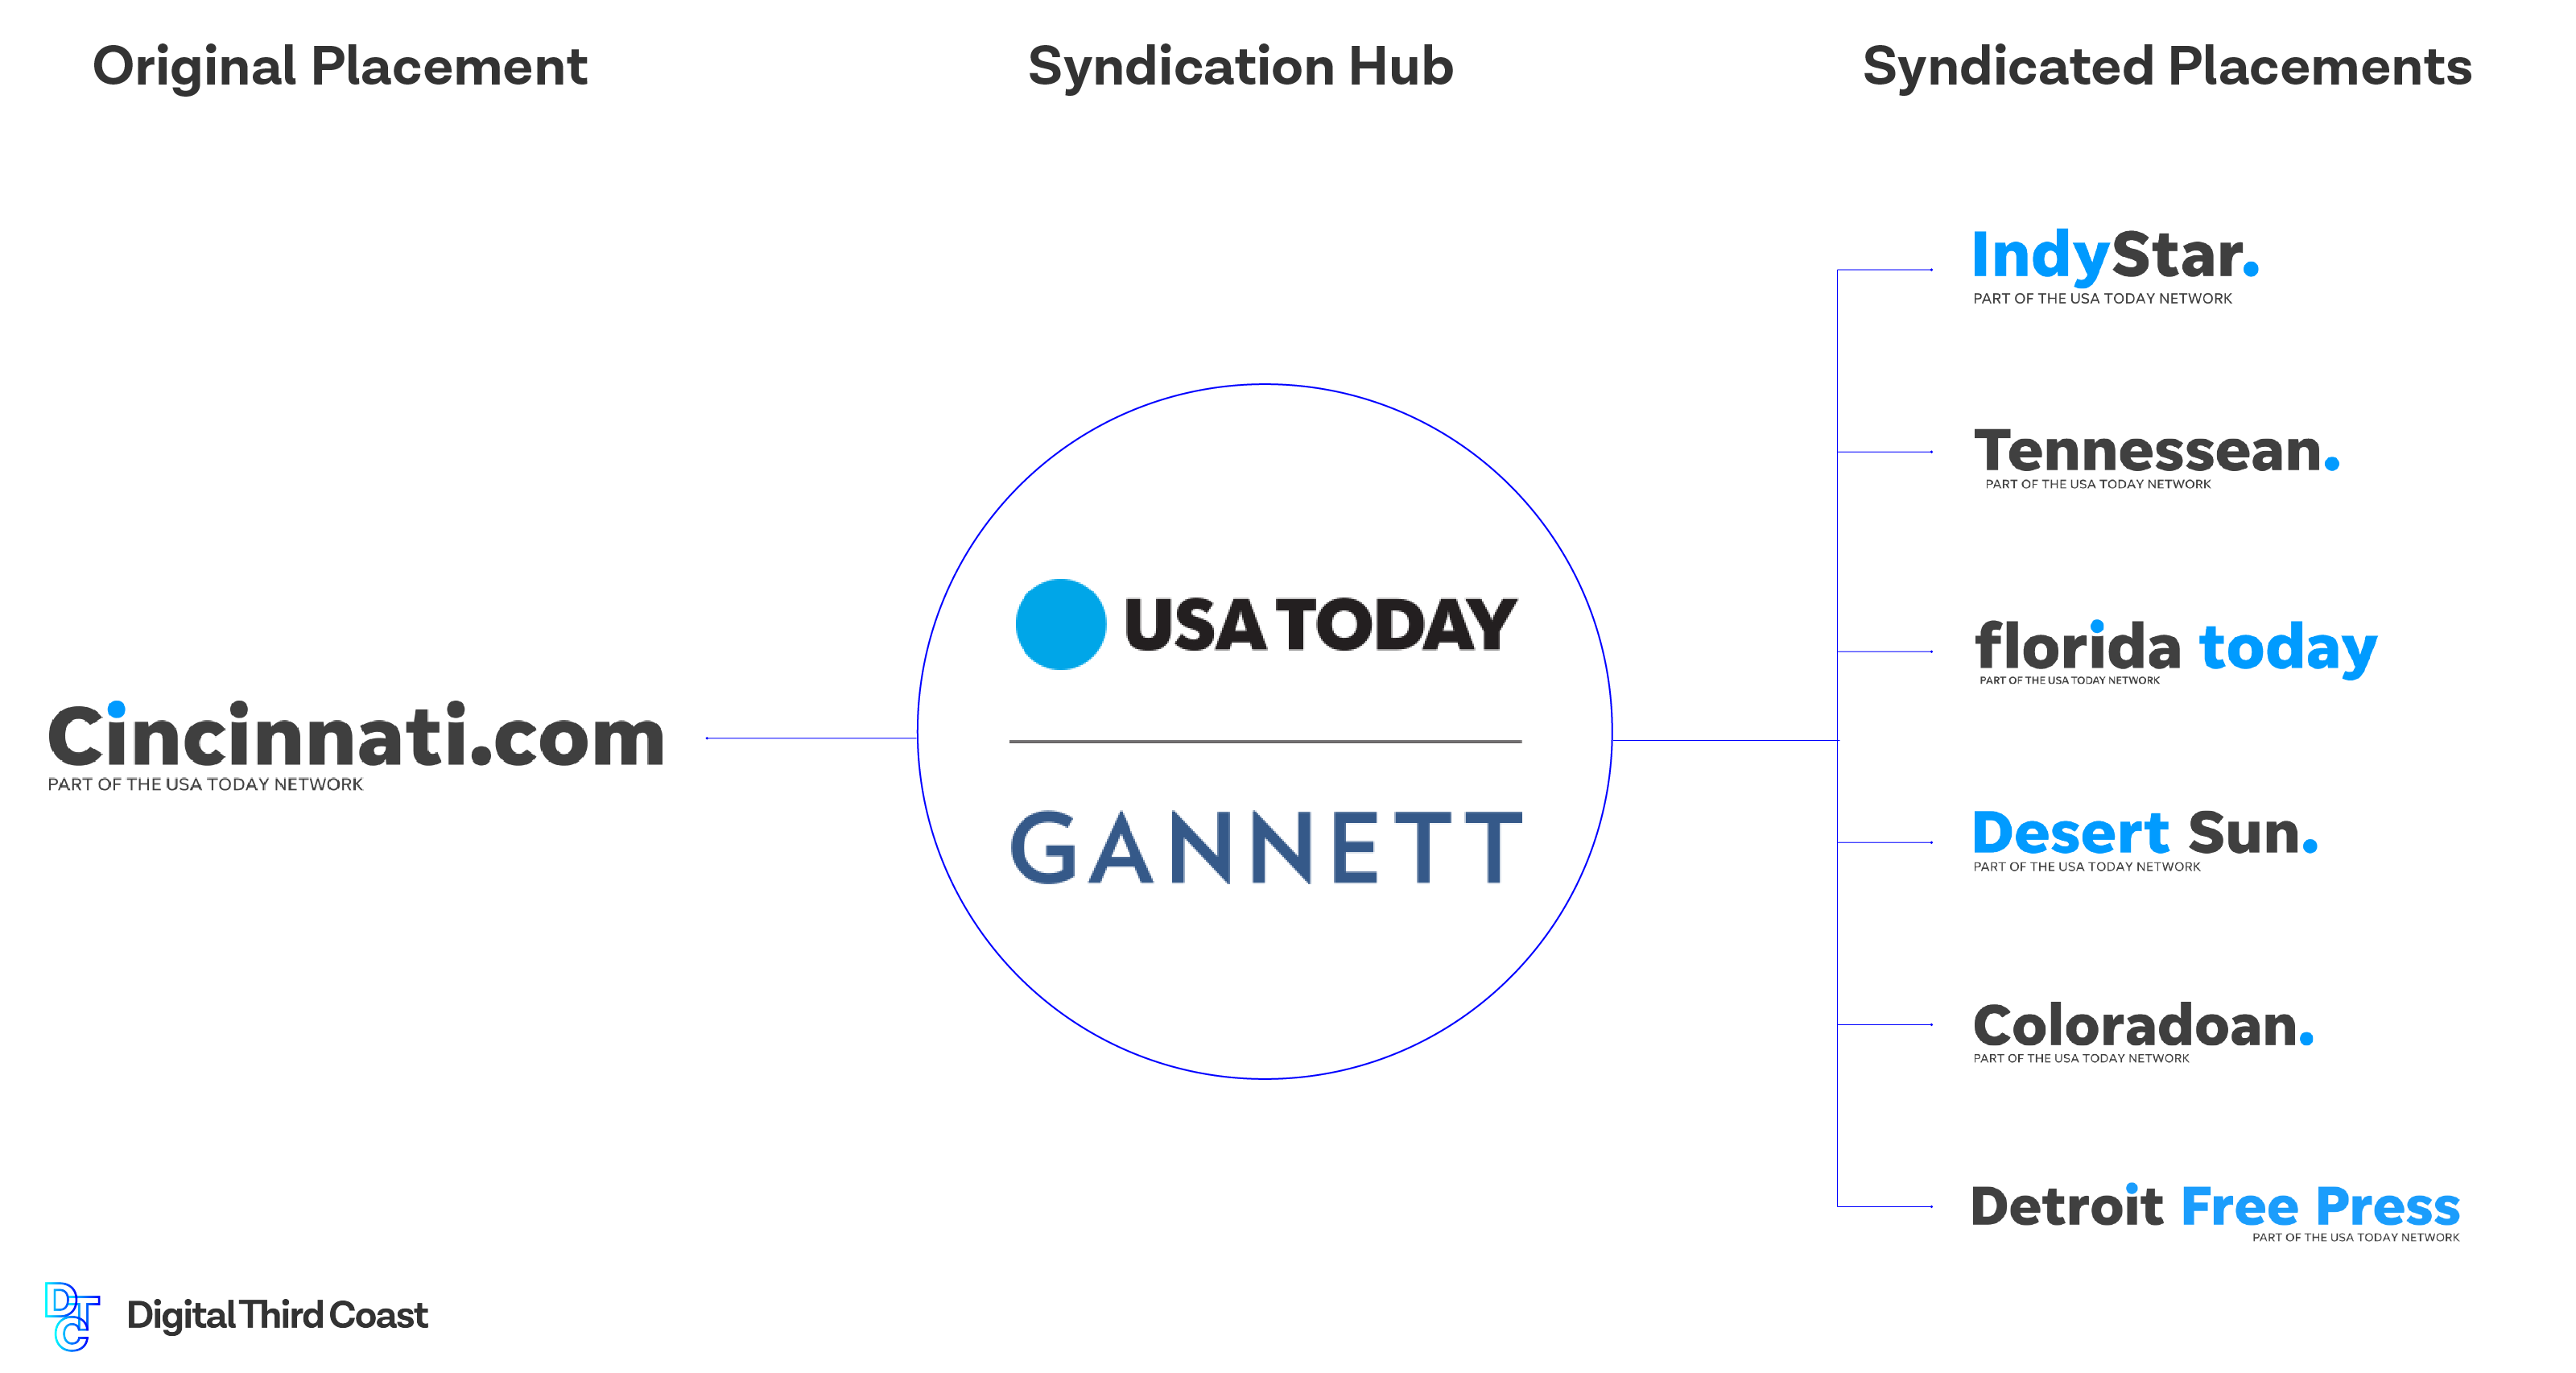 Chart visualizing how an article syndicates across the USA Today network.